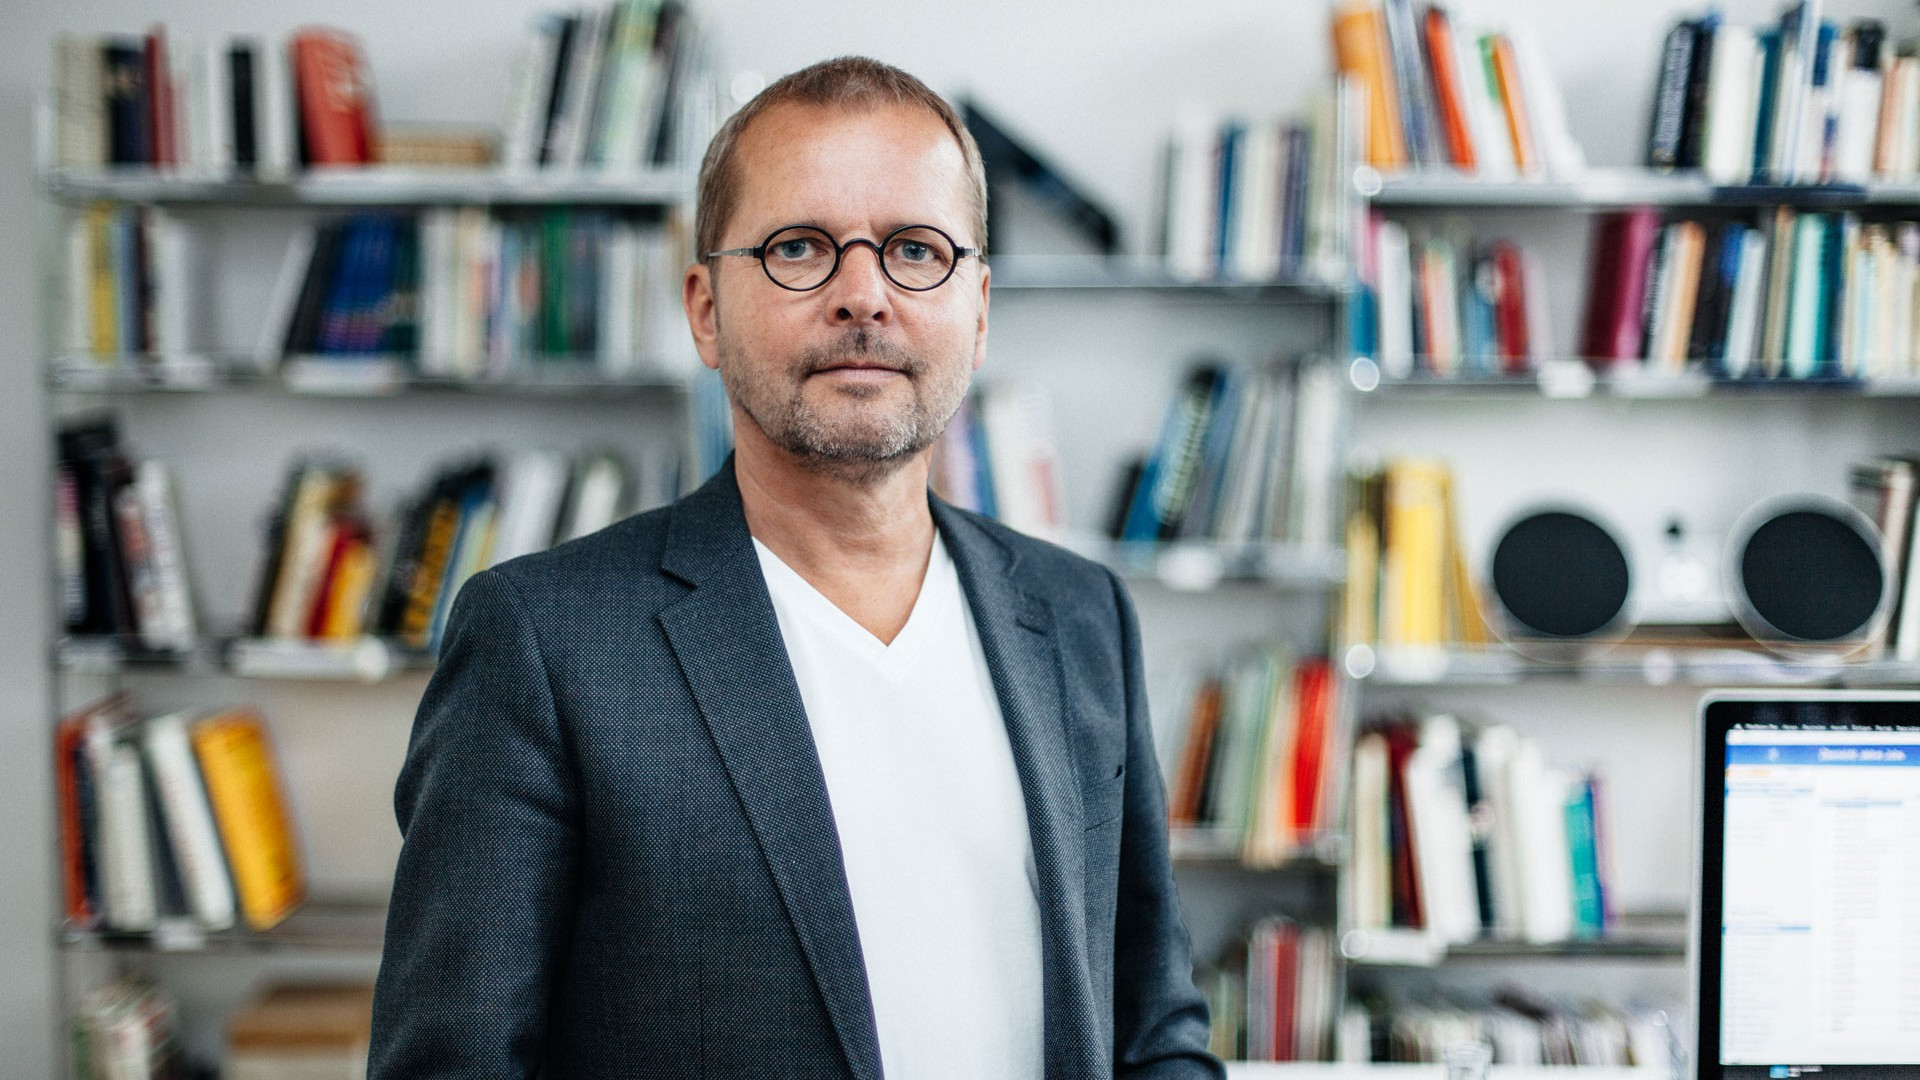 Florian is standing in front of the bookshelf in his office in a white T-shirt and dark jacket. He has a three-day beard and wears glasses with round lenses.